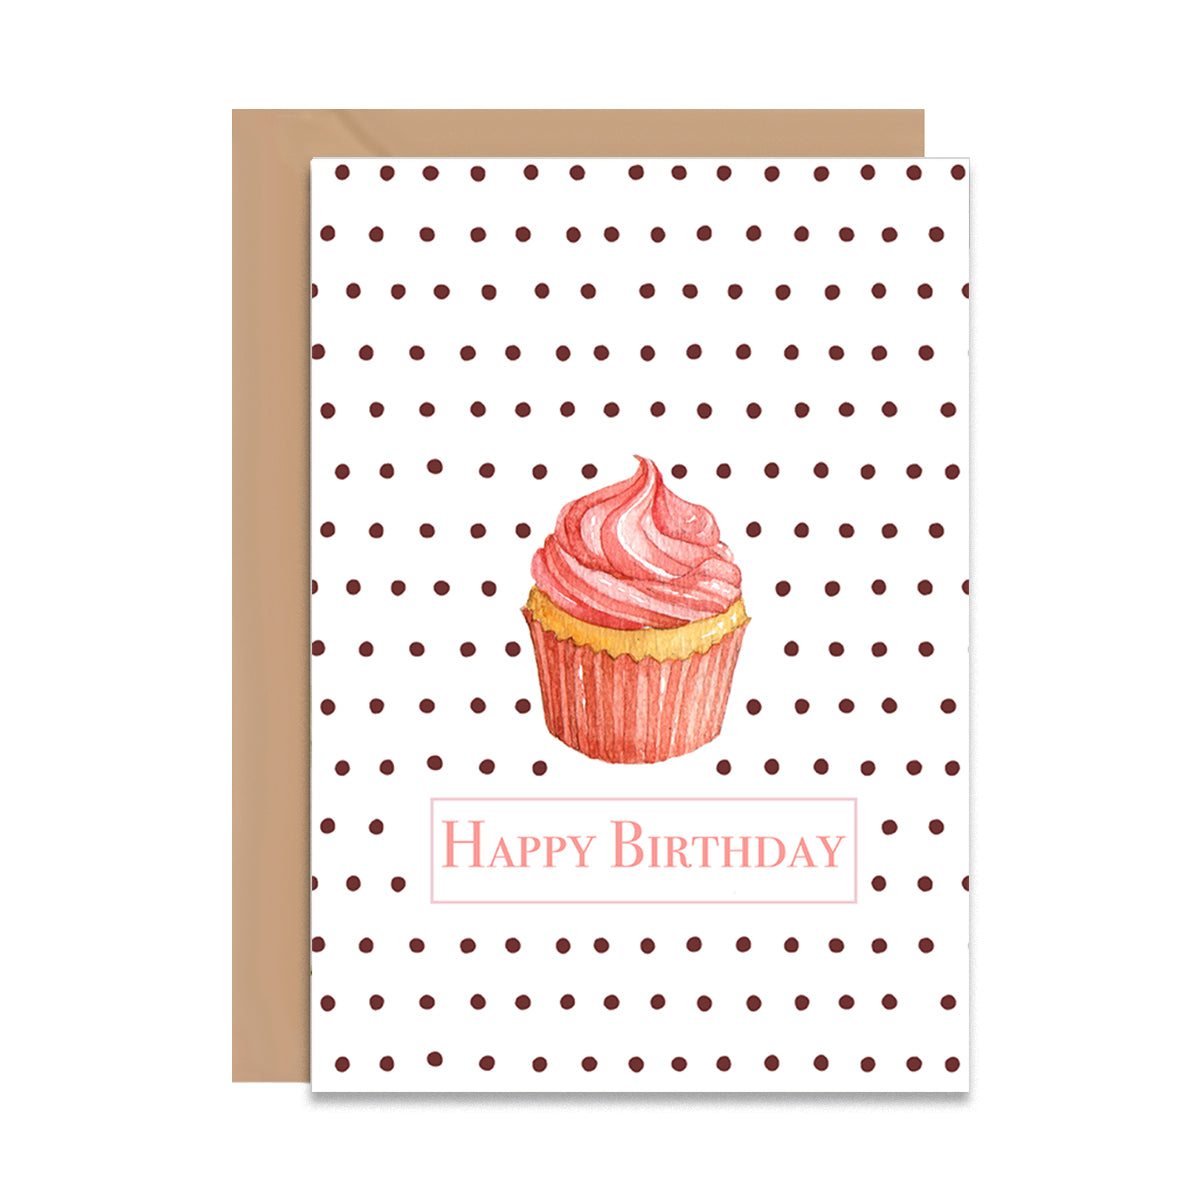 Happy Birthday Retro Cupcake Card-Greeting Cards-Mode Prints